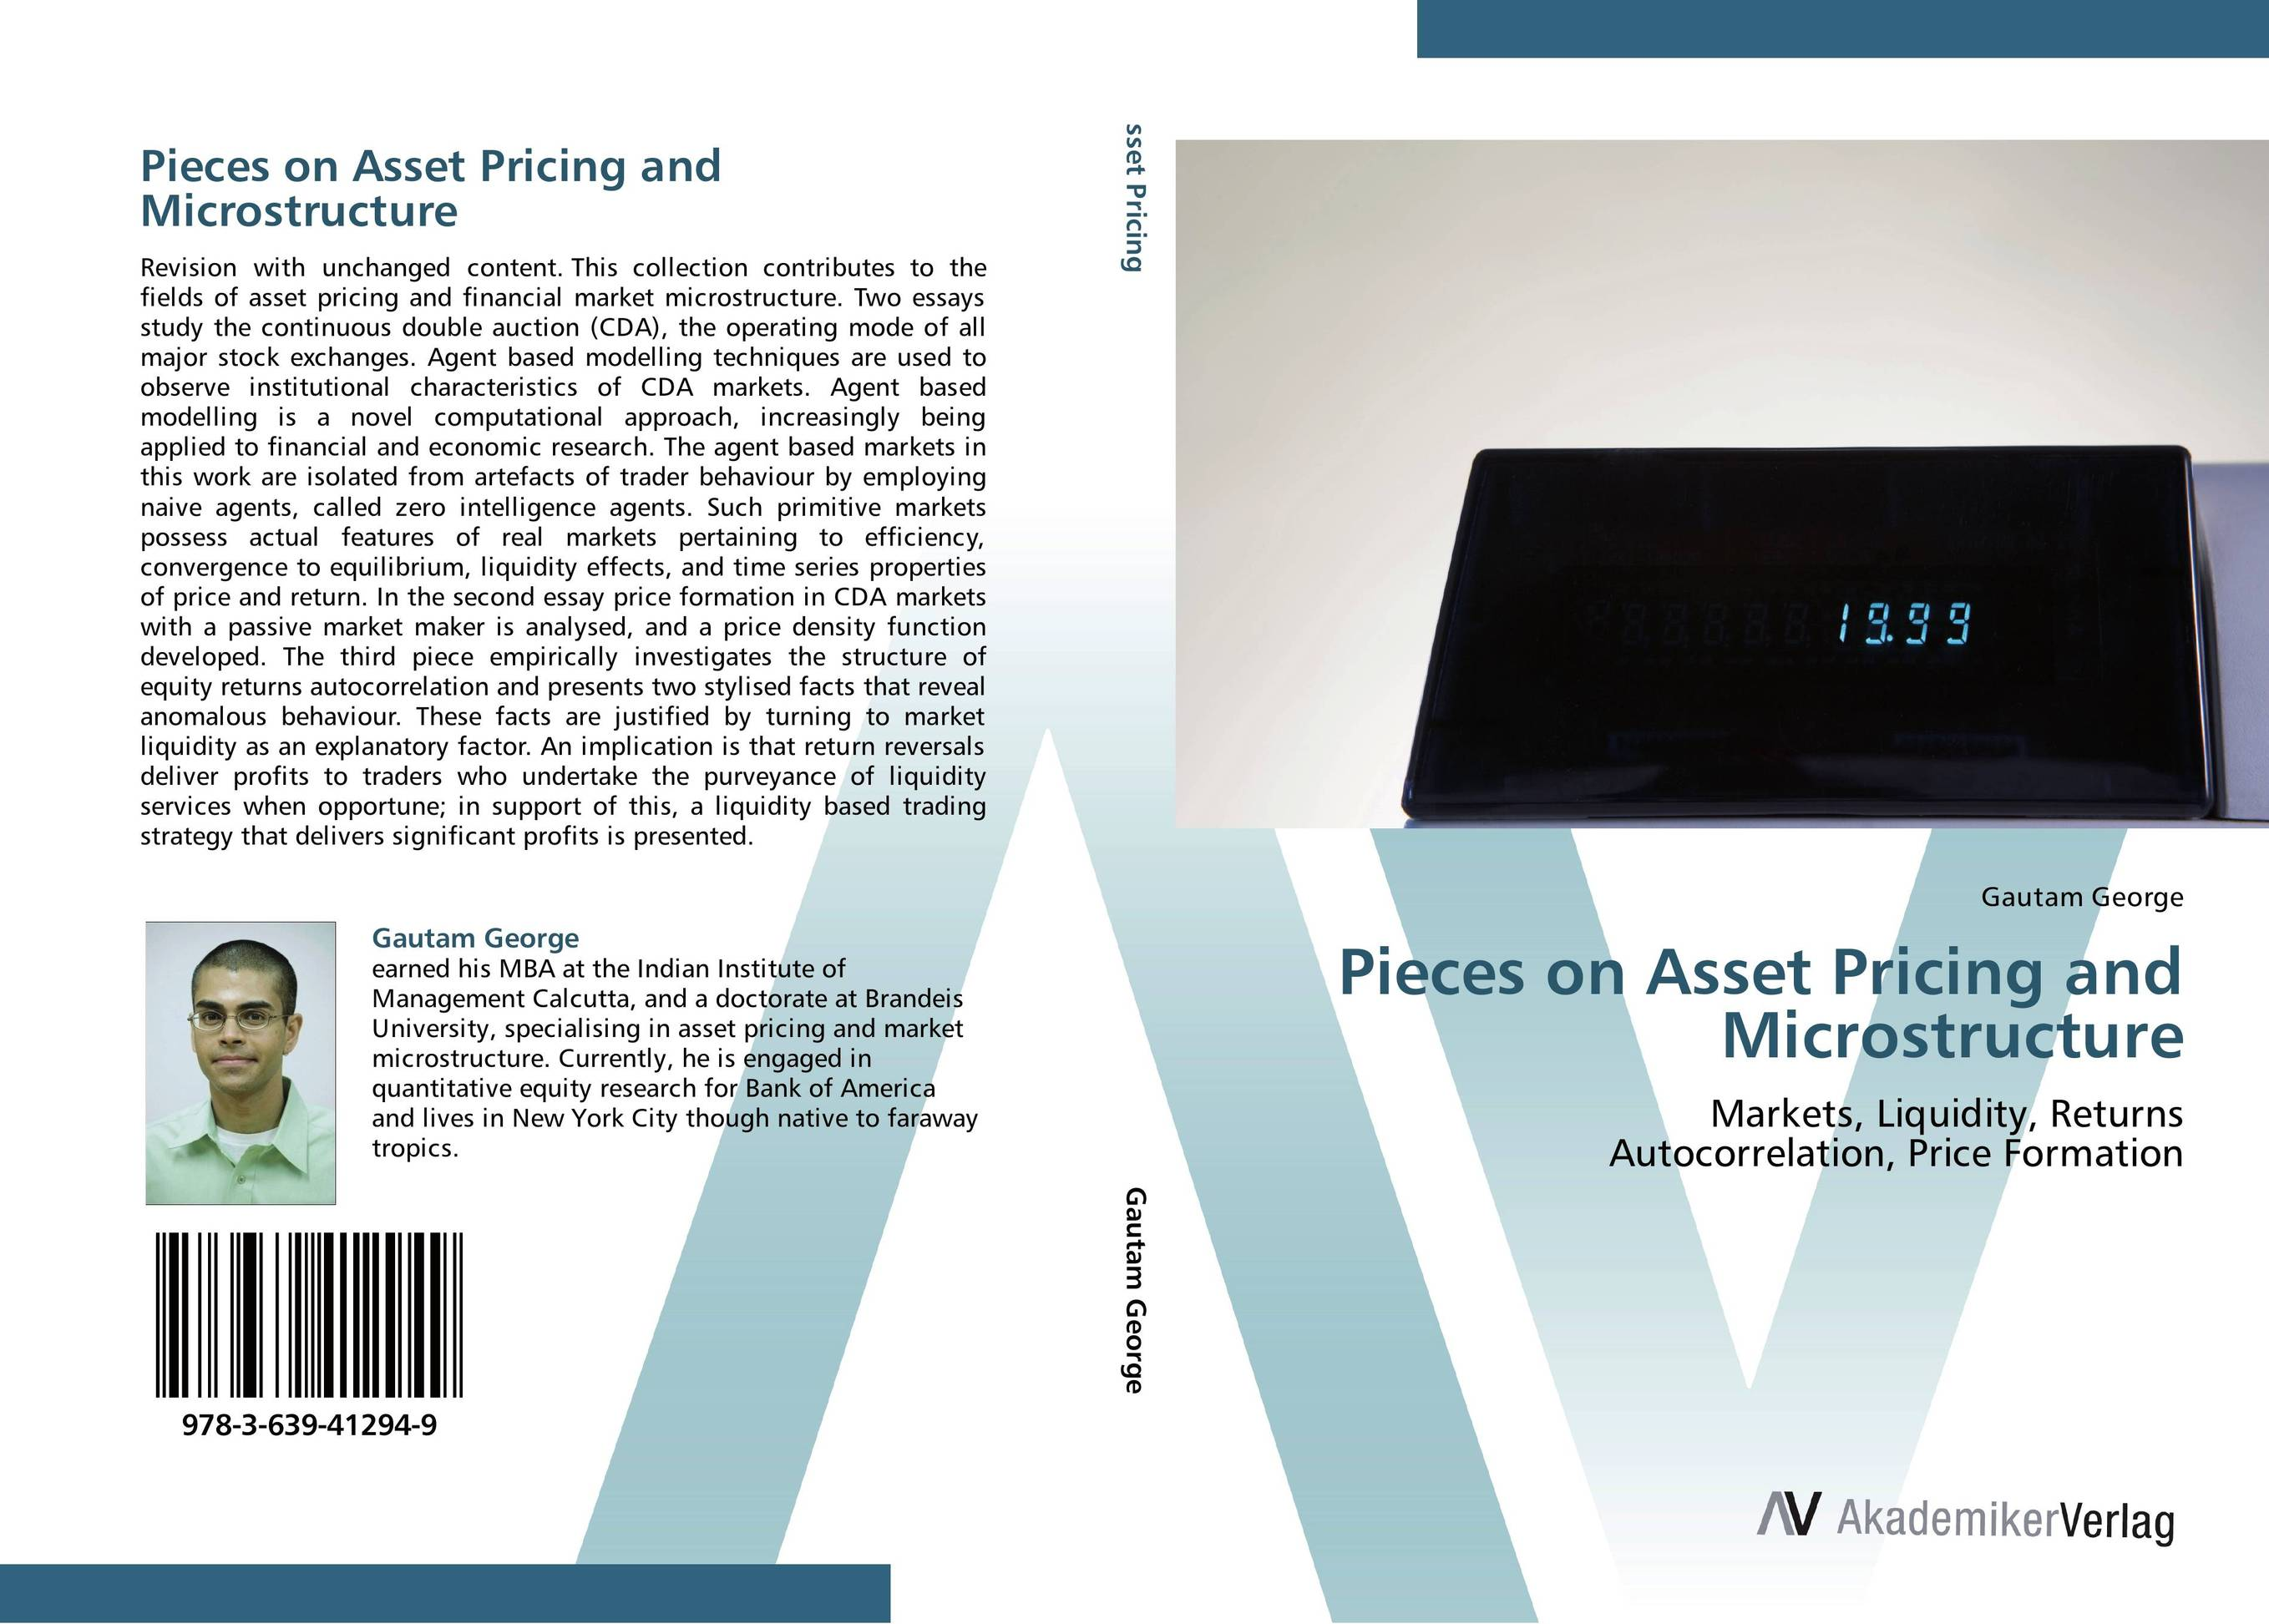 Pieces on Asset Pricing and Microstructure